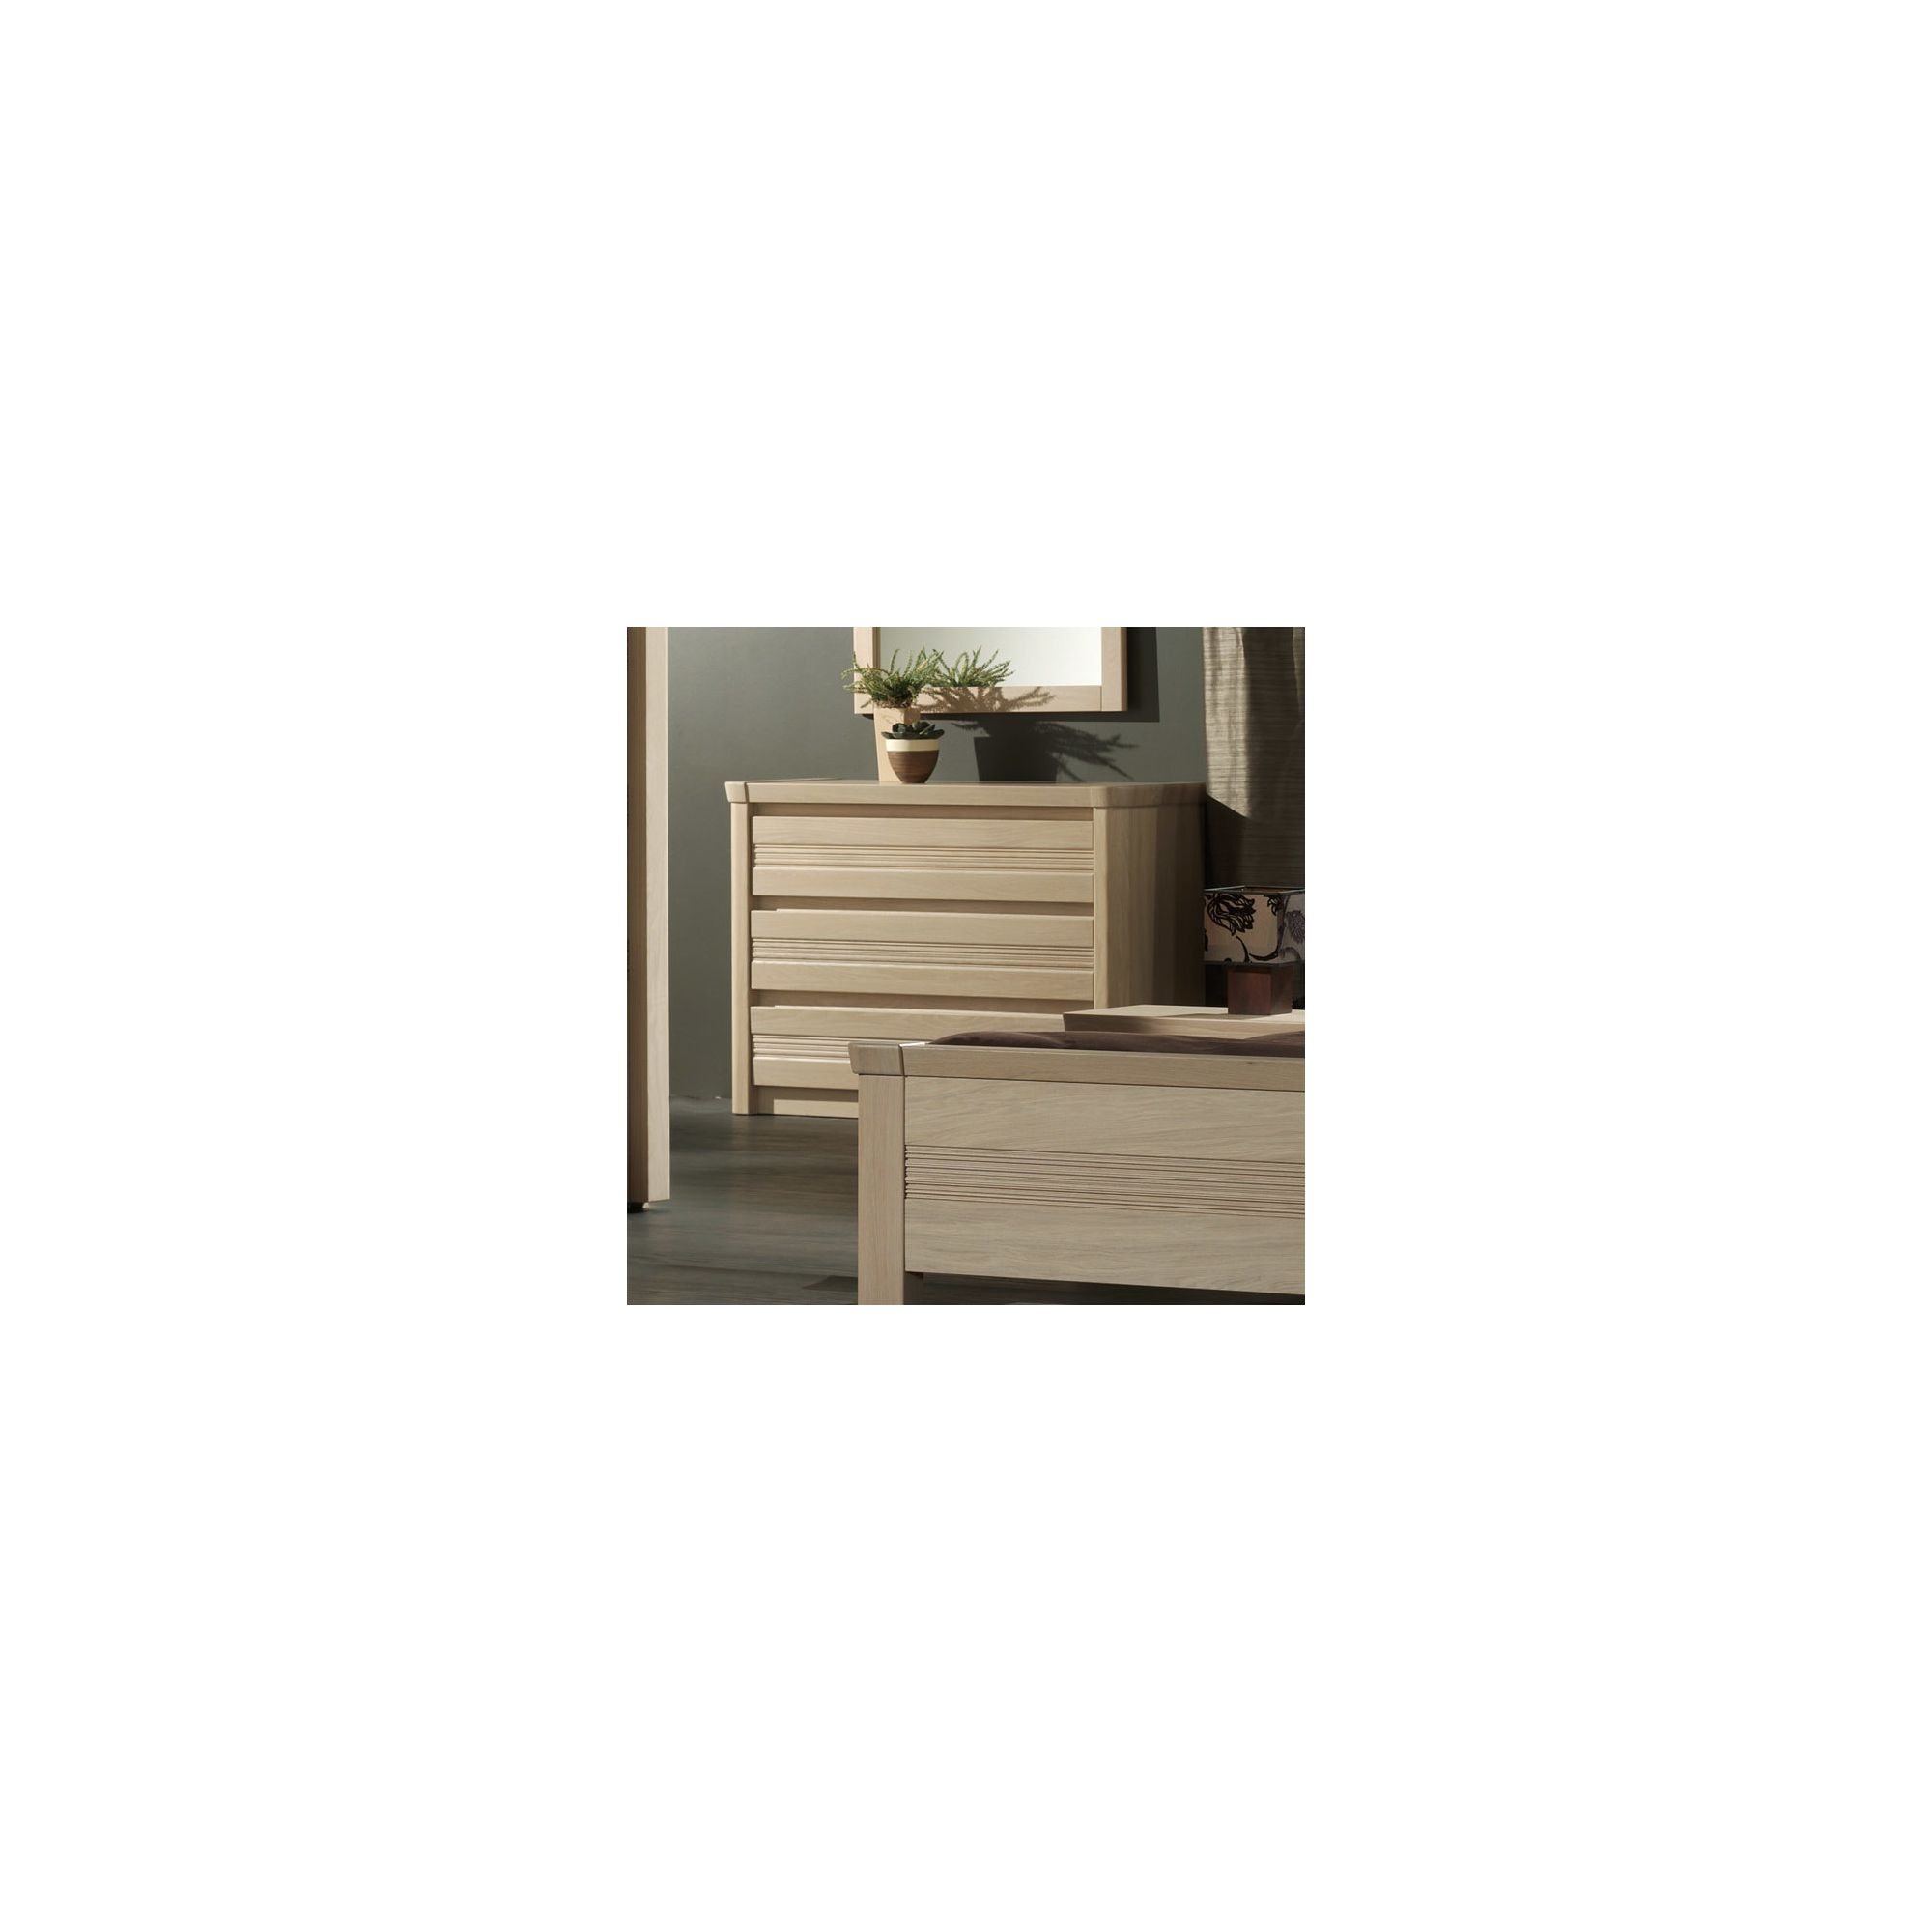 Sleepline Mundo 3 Drawers Chest - Mat Lacquered at Tesco Direct